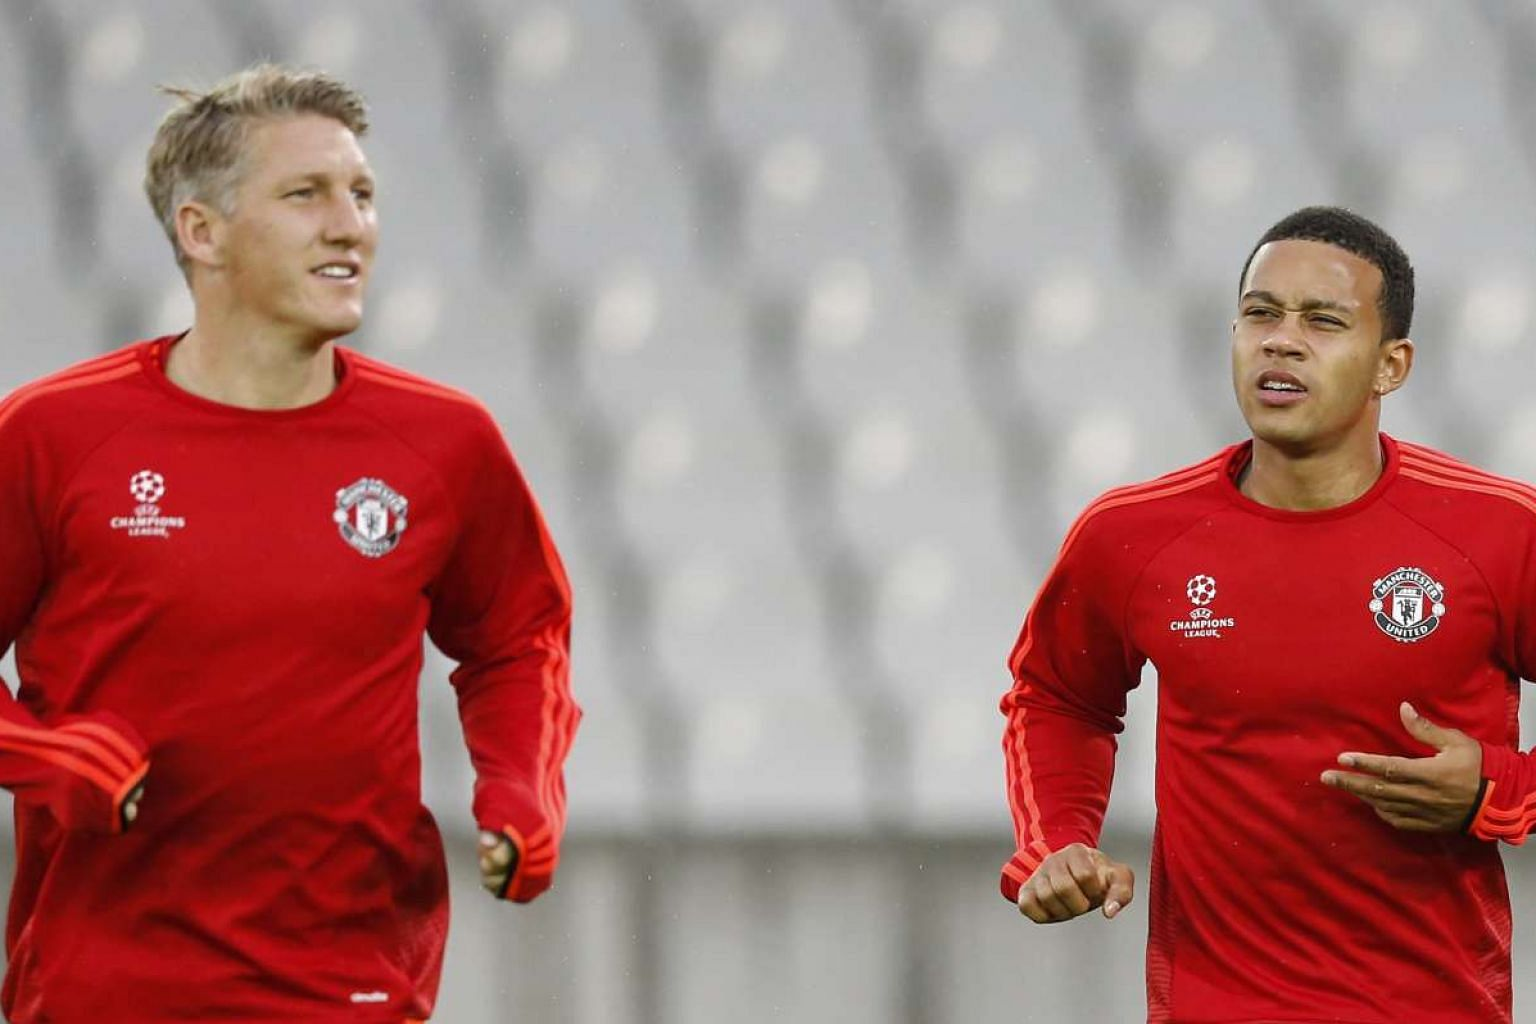 Manchester United's Bastian Schweinsteiger (left) and Memphis Depay during training. Depay, who moved to Man United from PSV Eindhoven in the summer, will be looking to make his mark against his former club.